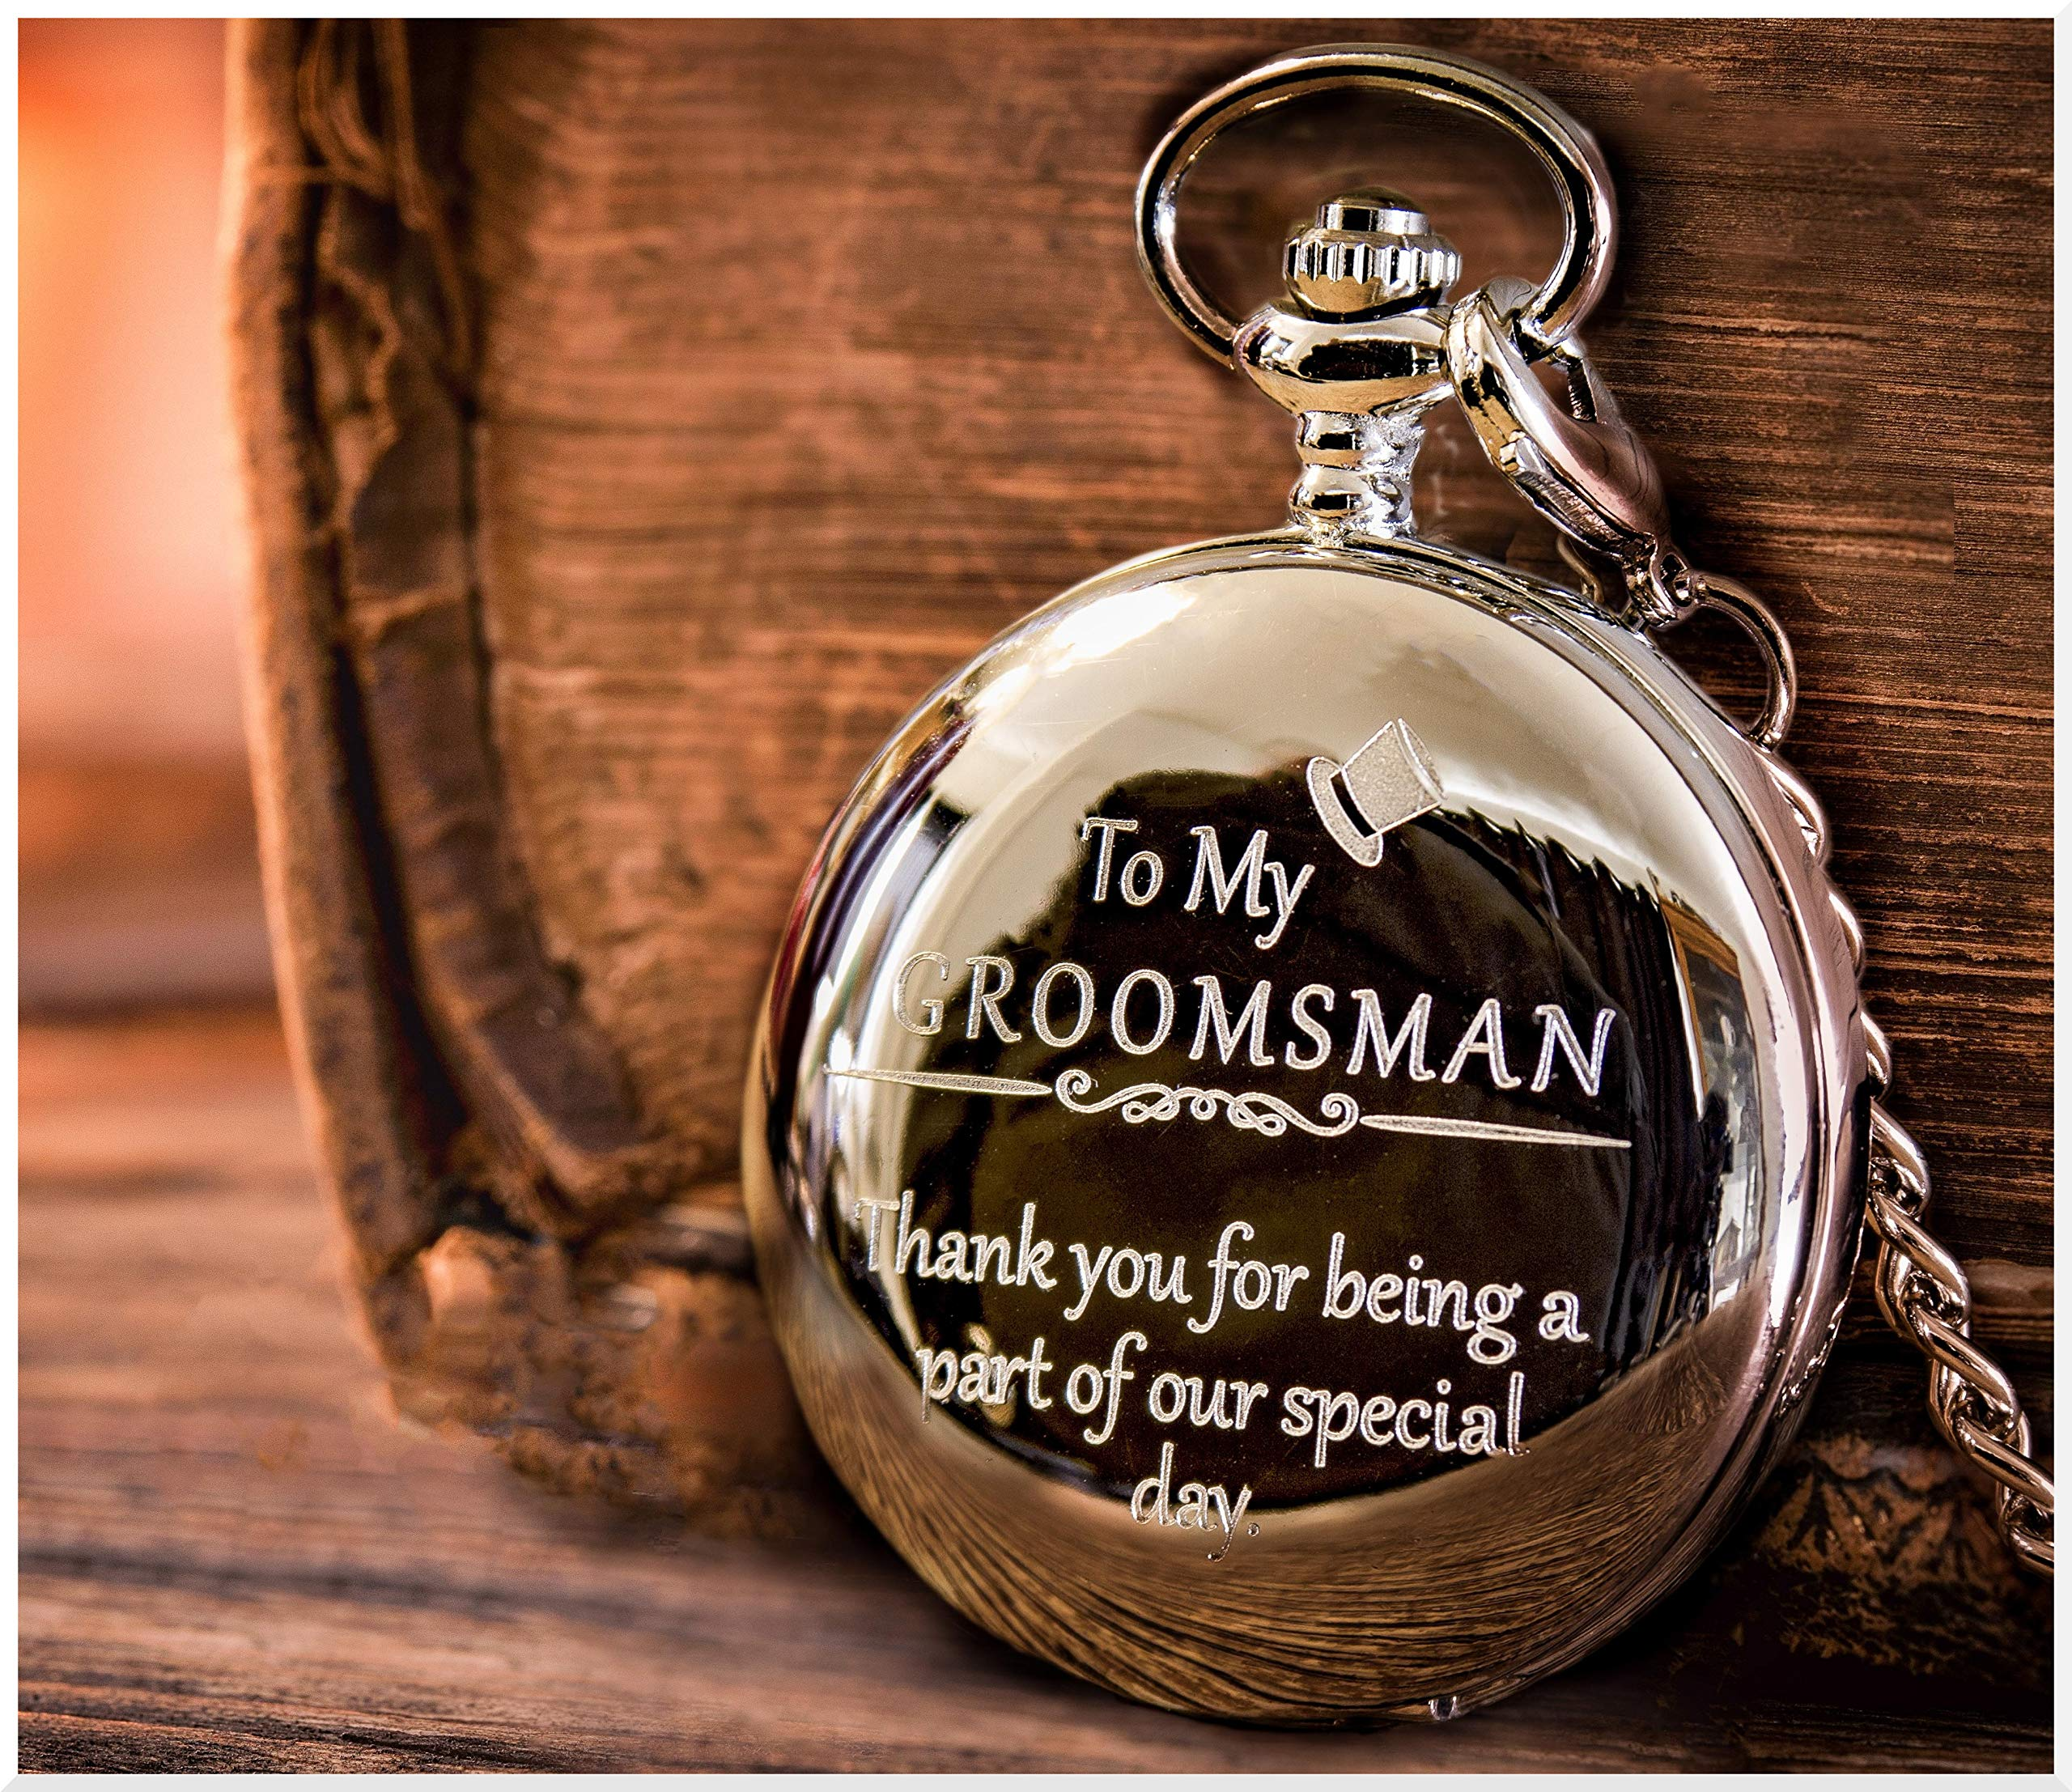 Groomsmen / Groomsman Gifts for Wedding | Best Man | Father of The Bride | Father & Menu0027s Groomsmen Gifts: Amazon.com